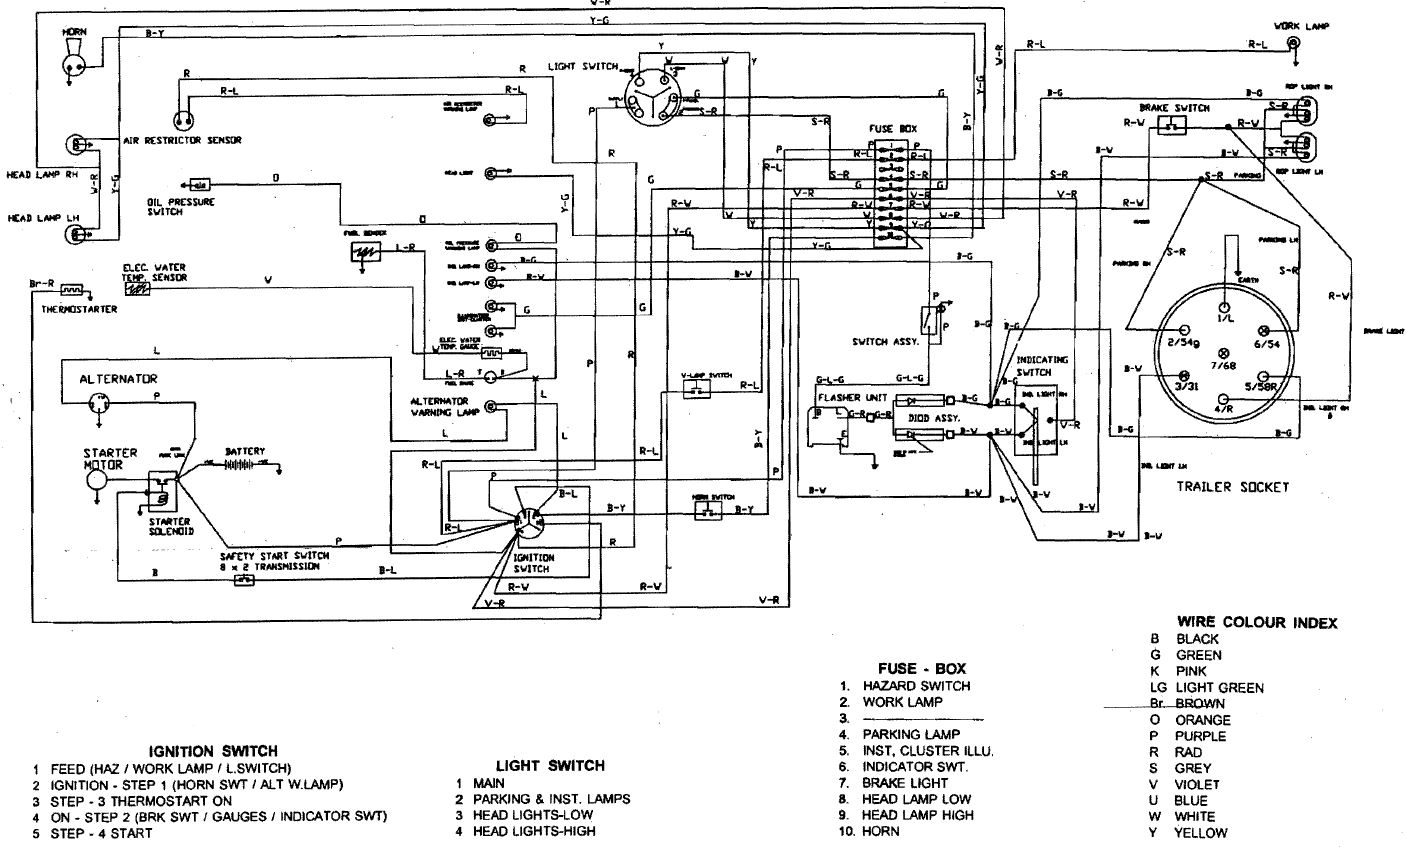 20158463319_b82d524c3d_o ignition switch wiring diagram john deere 100 series wiring diagram at readyjetset.co